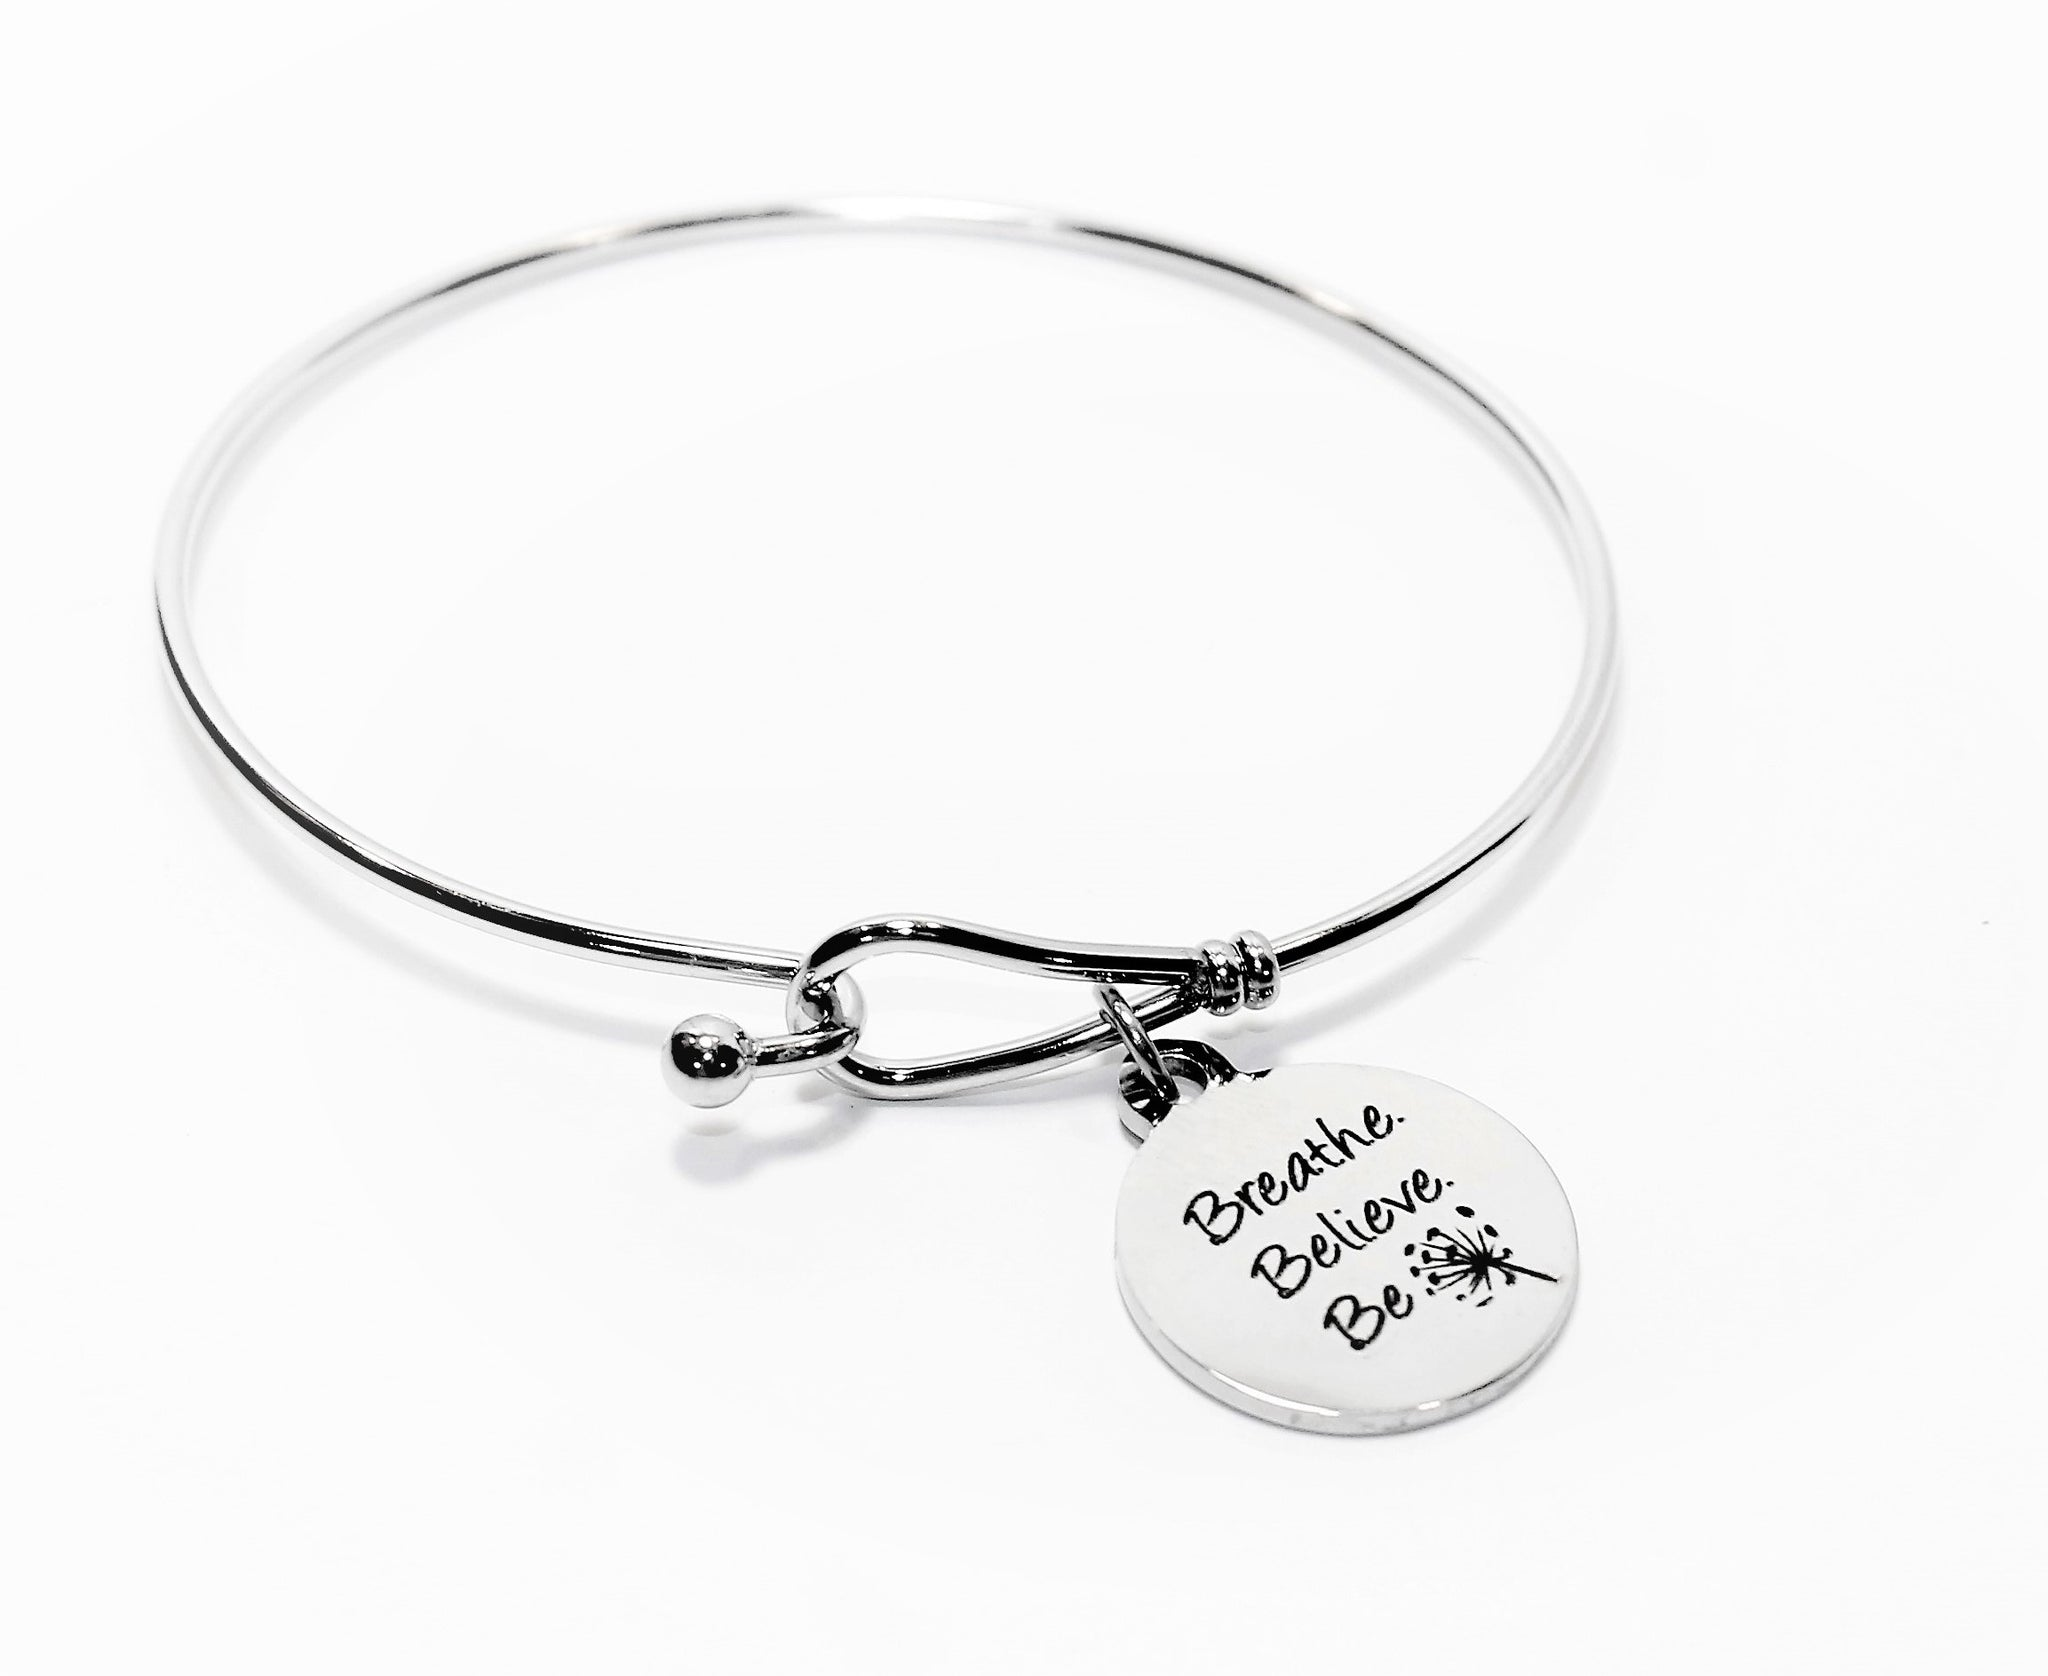 Breathe Believe Be Bracelet, tranquility bracelet